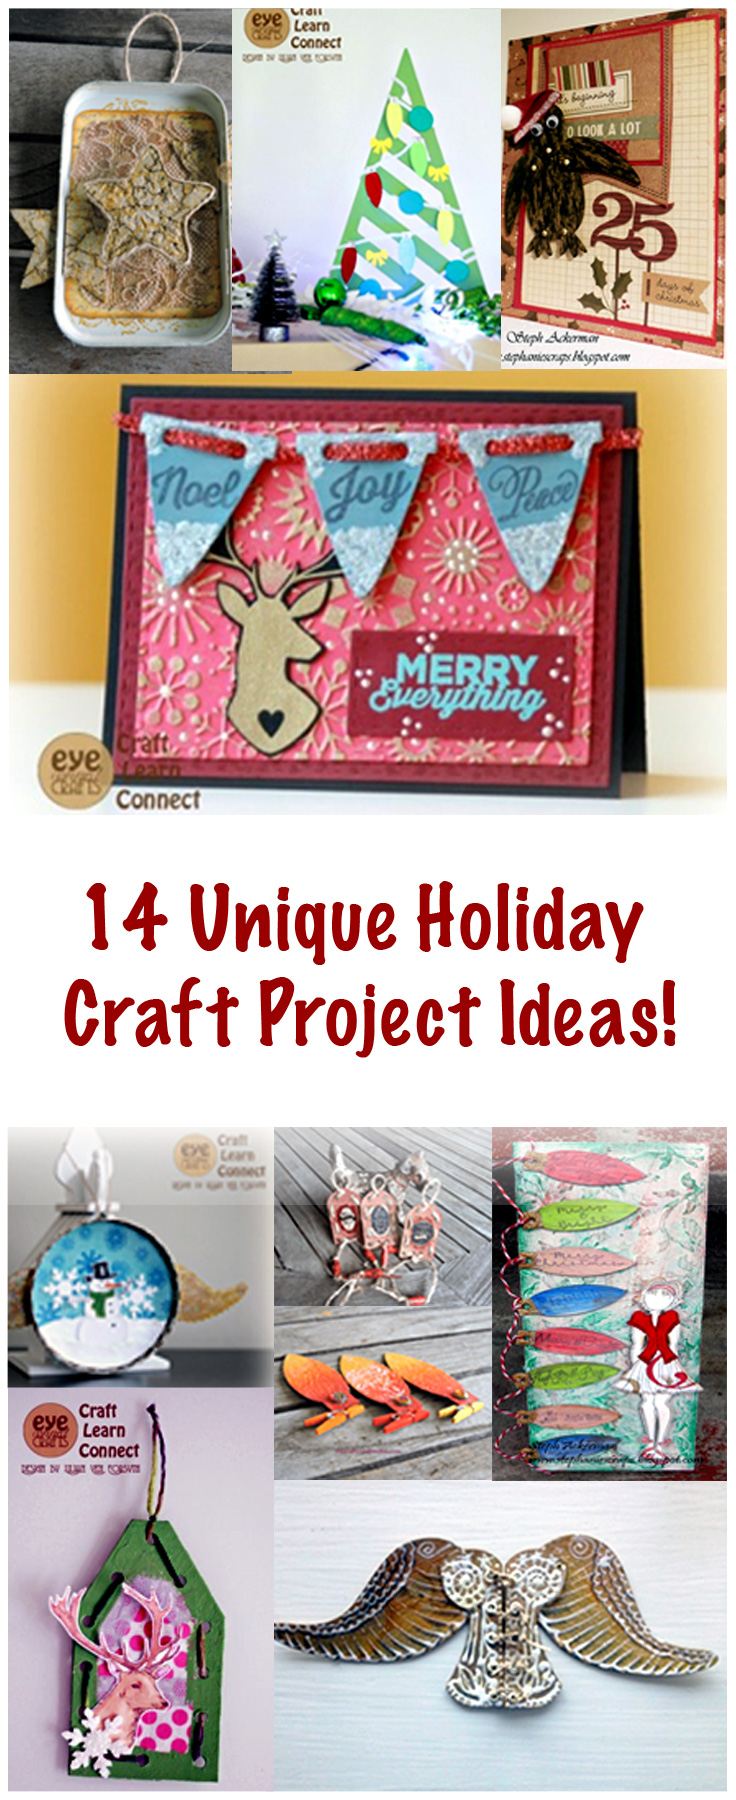 14 unique holiday craft project ideas.